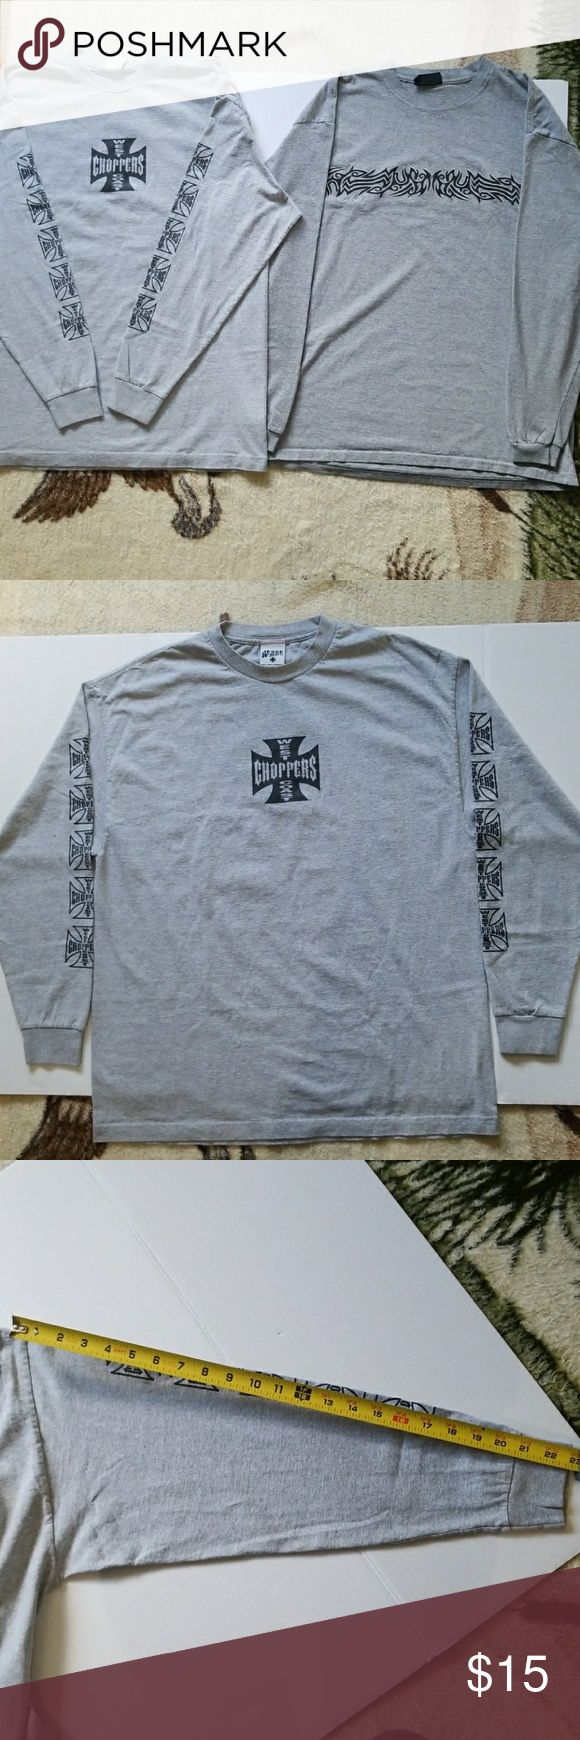 MEN'S GRAY LONG SLEEVE SHIRTS BUNDLE First T-shirt is size XL as shown in the tag... 2nd shirt doesn't have a size tag but it is almost the same size as the first shirt. Length of sleeves are shown in the pictures for reference.. Both shirts are in good condition. West Coast Choppers Shirts Tees - Long Sleeve